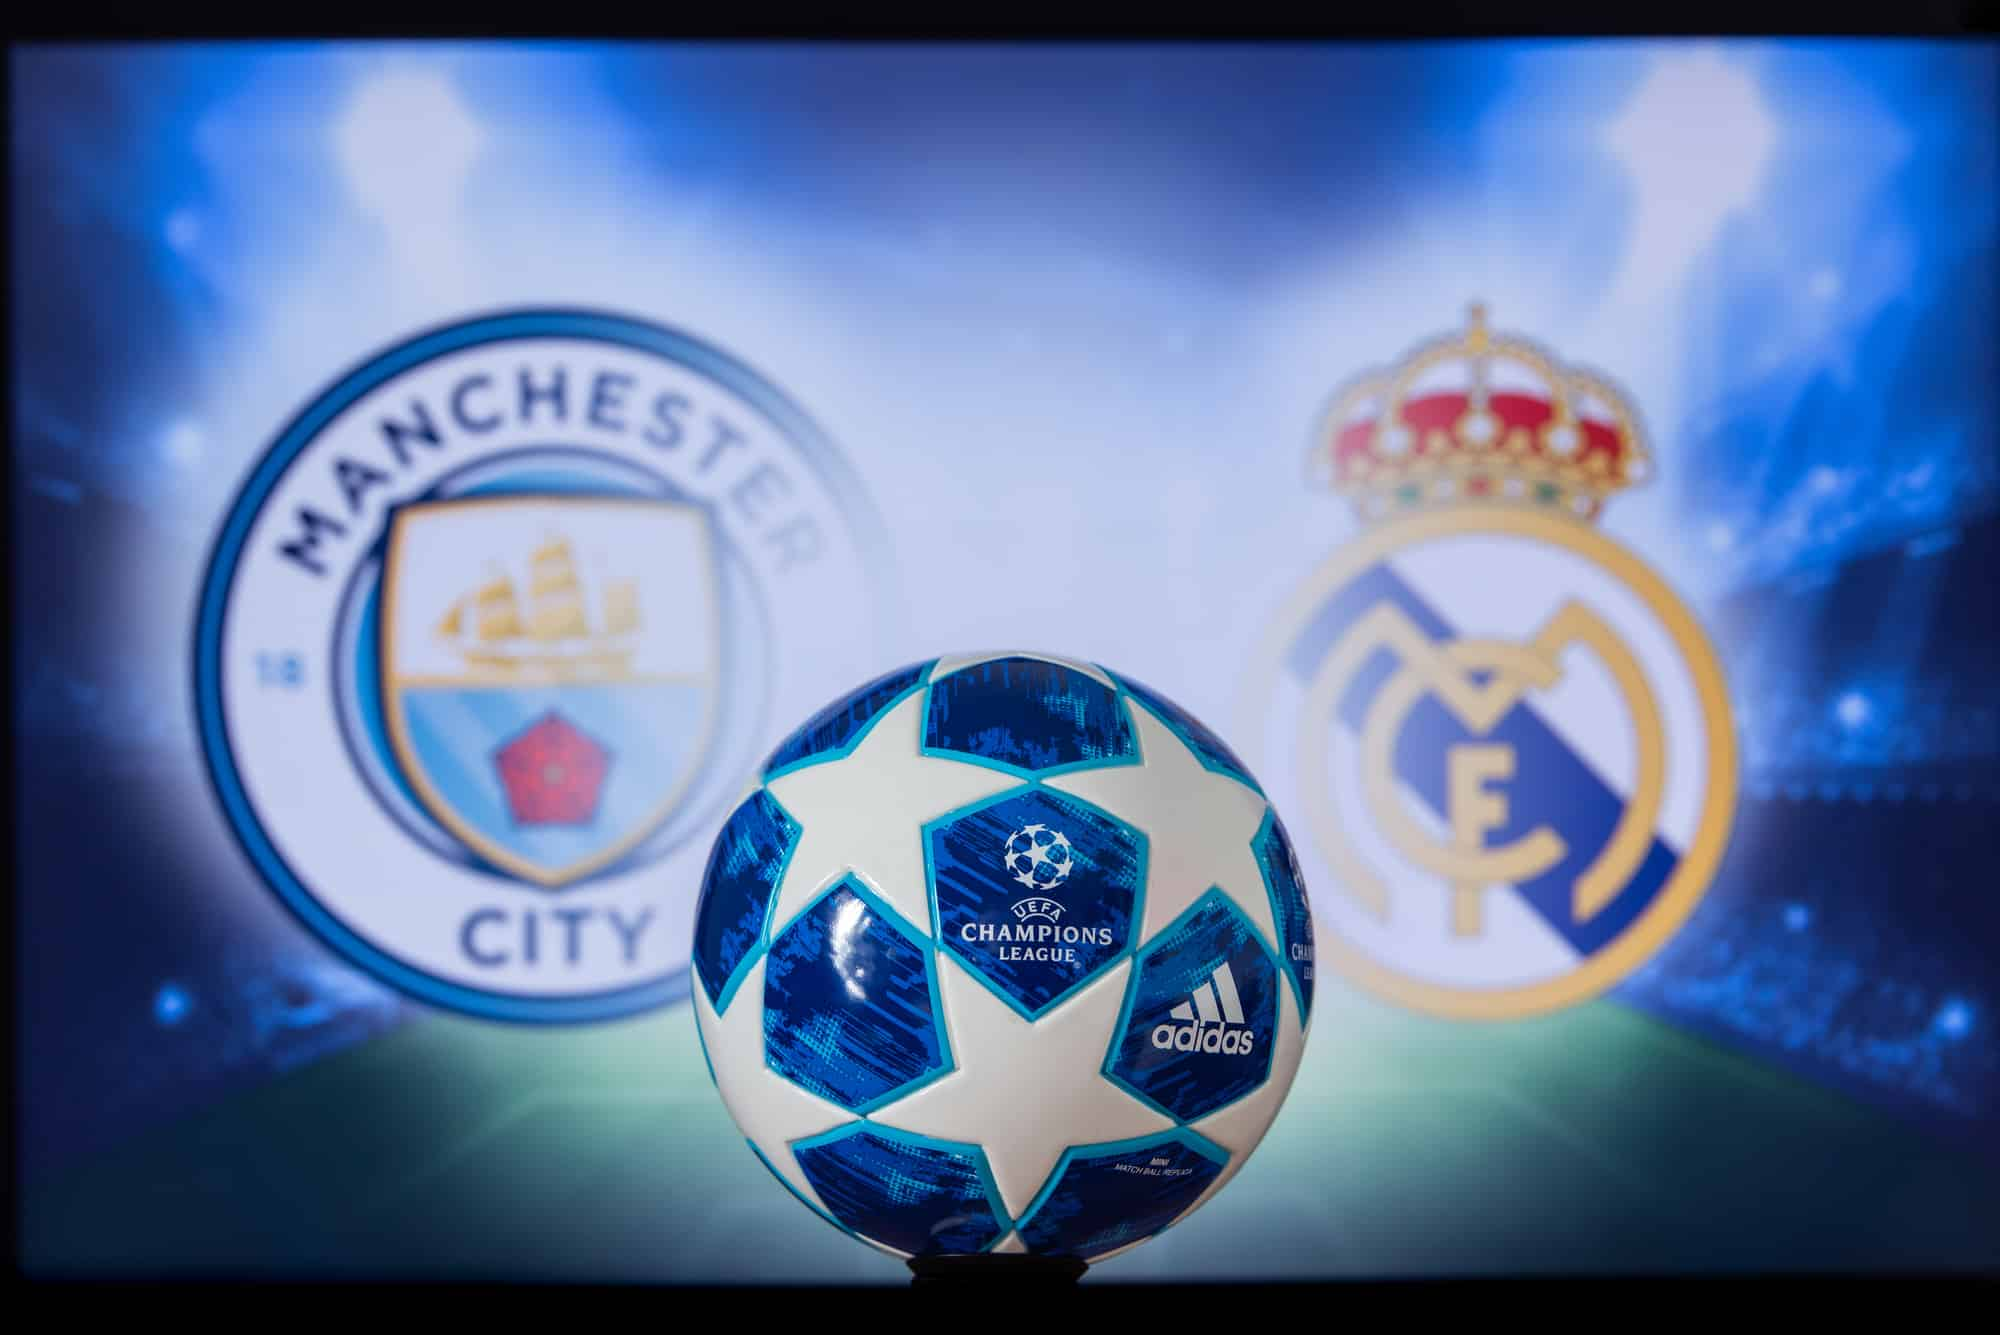 Manchester City v Real Madrid Preview & Prediction for Champions League game on 07/08/2020